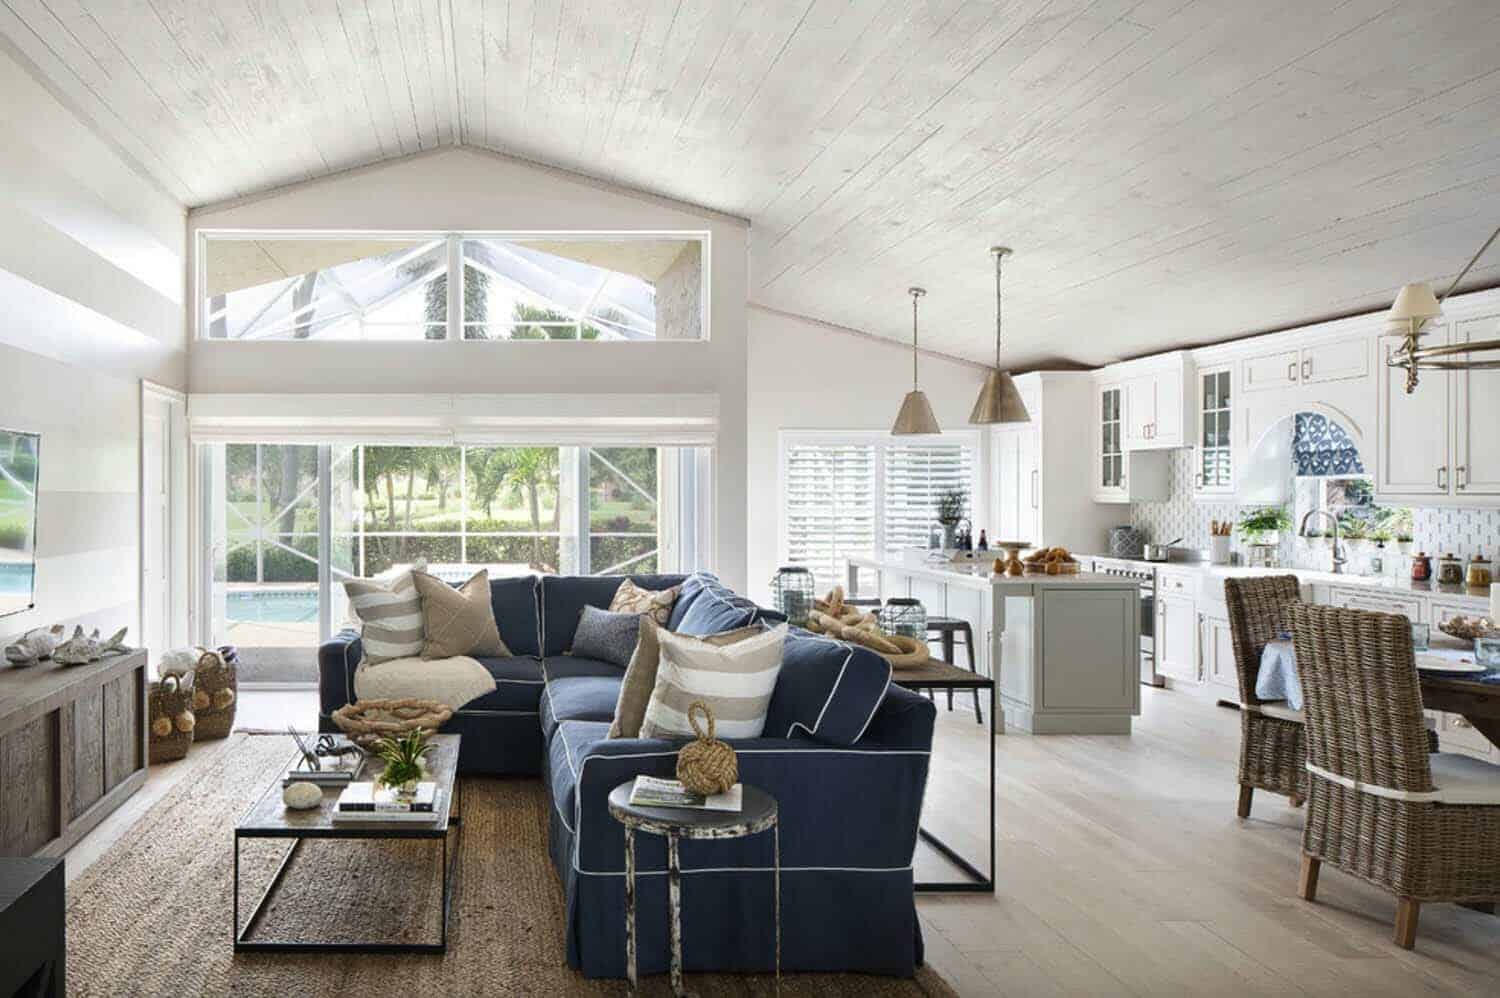 Cozy seaside cottage offers breezy beach style living in florida - Beach style living room ...